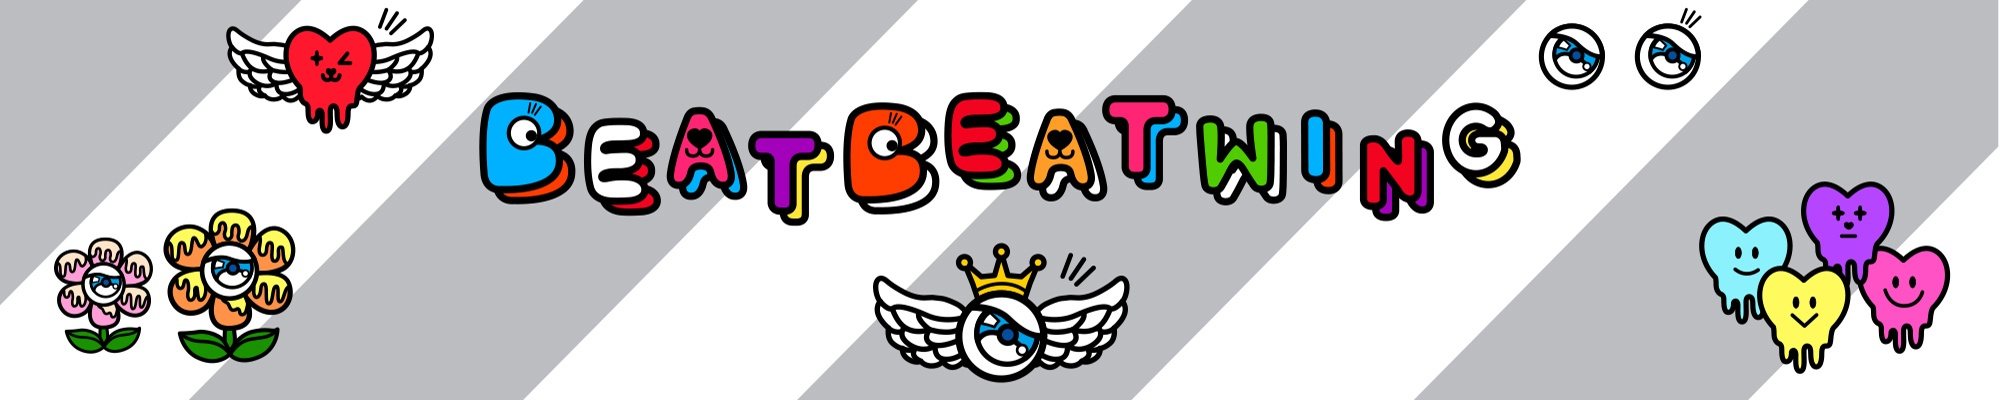 beatbeatwing Cover